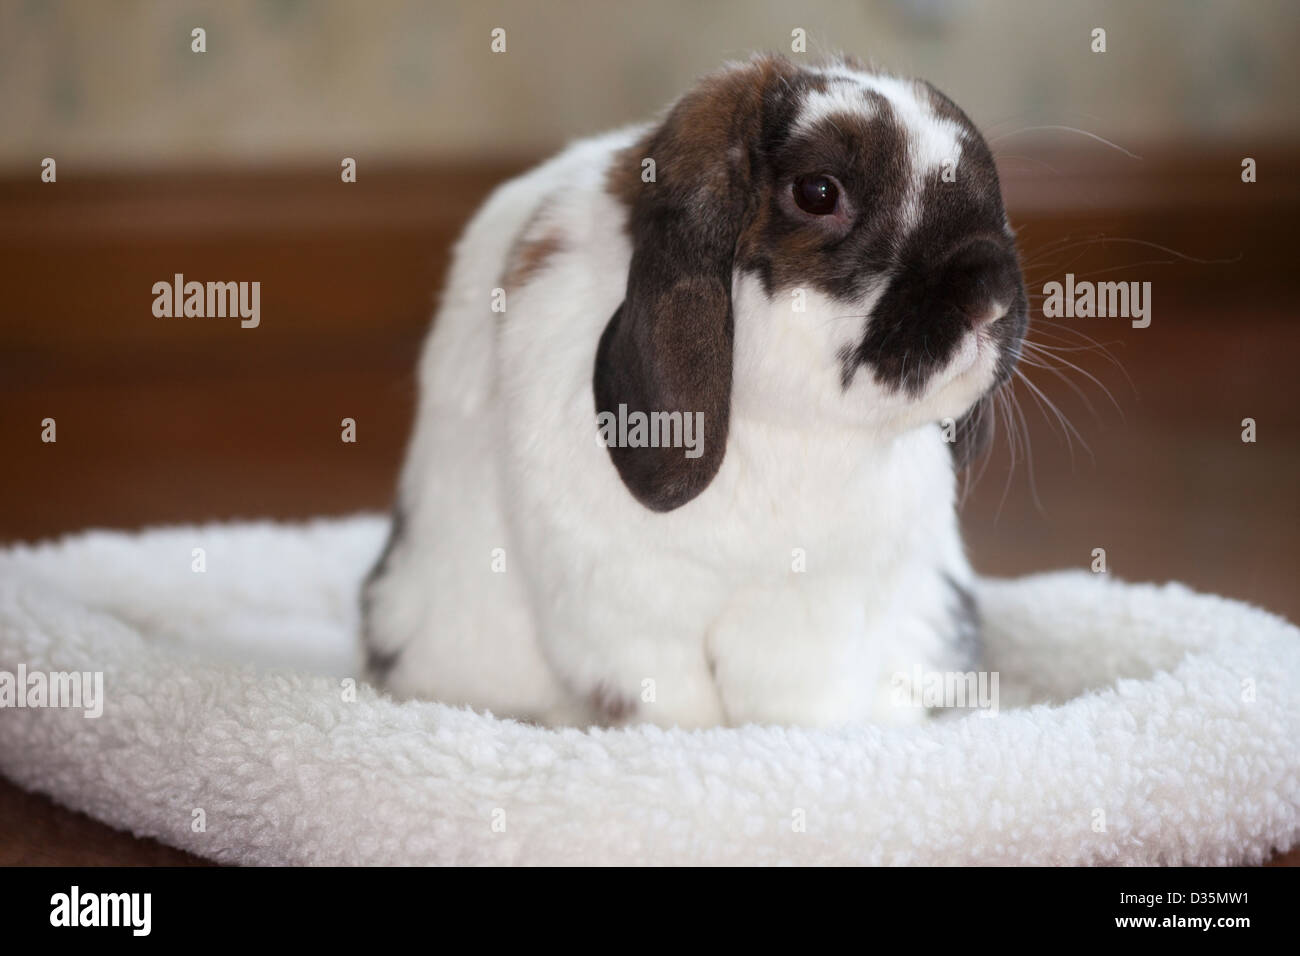 Holland lop pet rabbit in his fleece bed in a hotel room - Stock Image